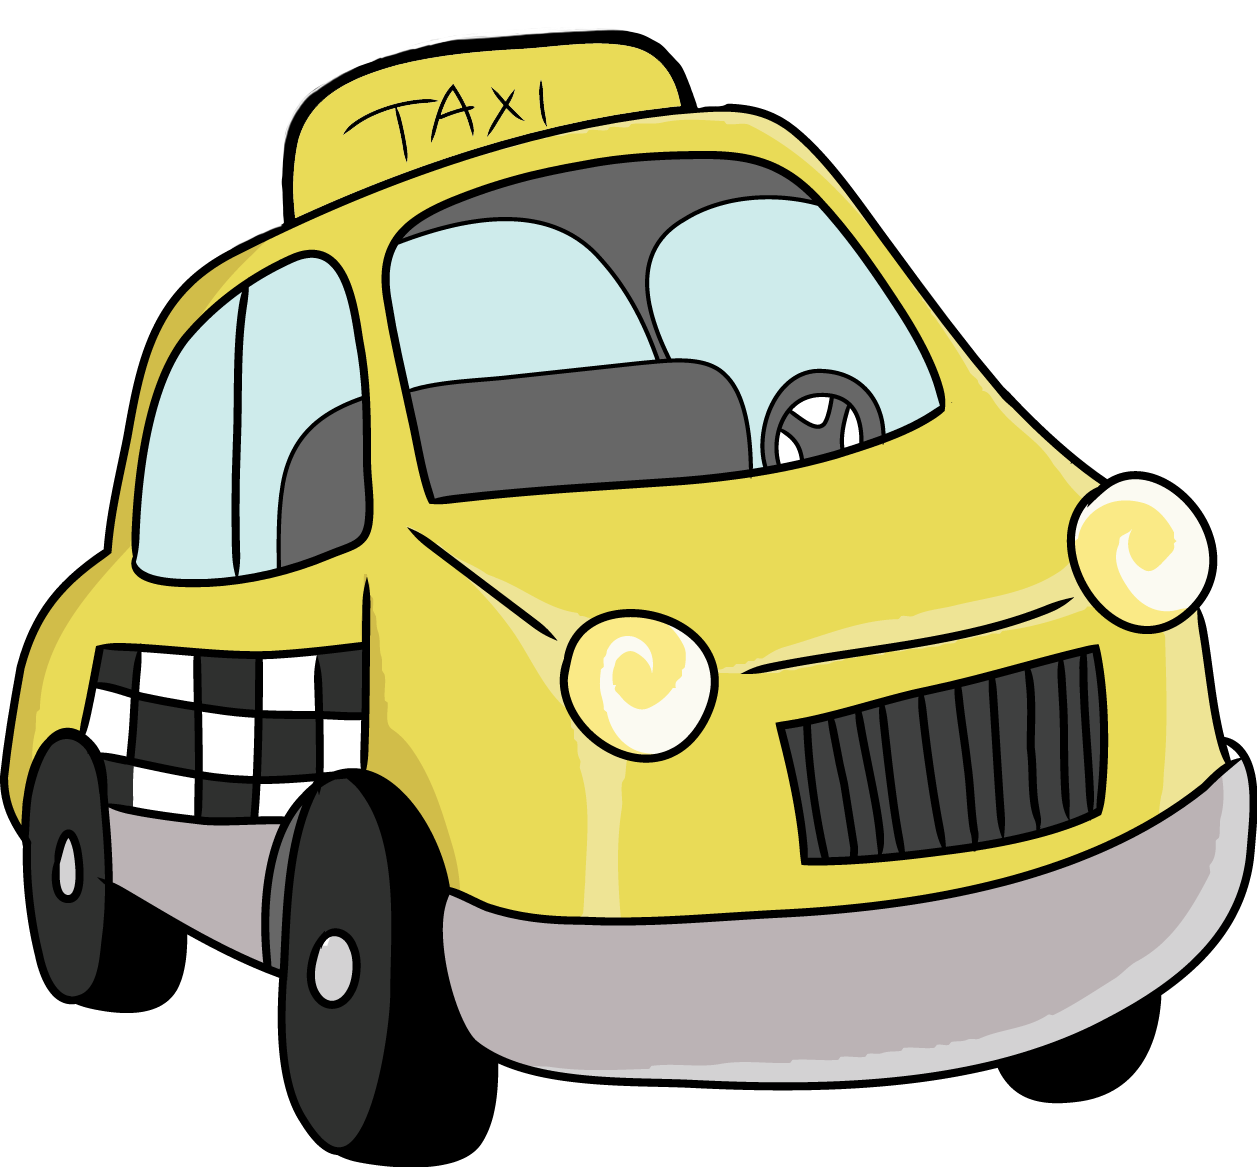 Cabs clipart #15